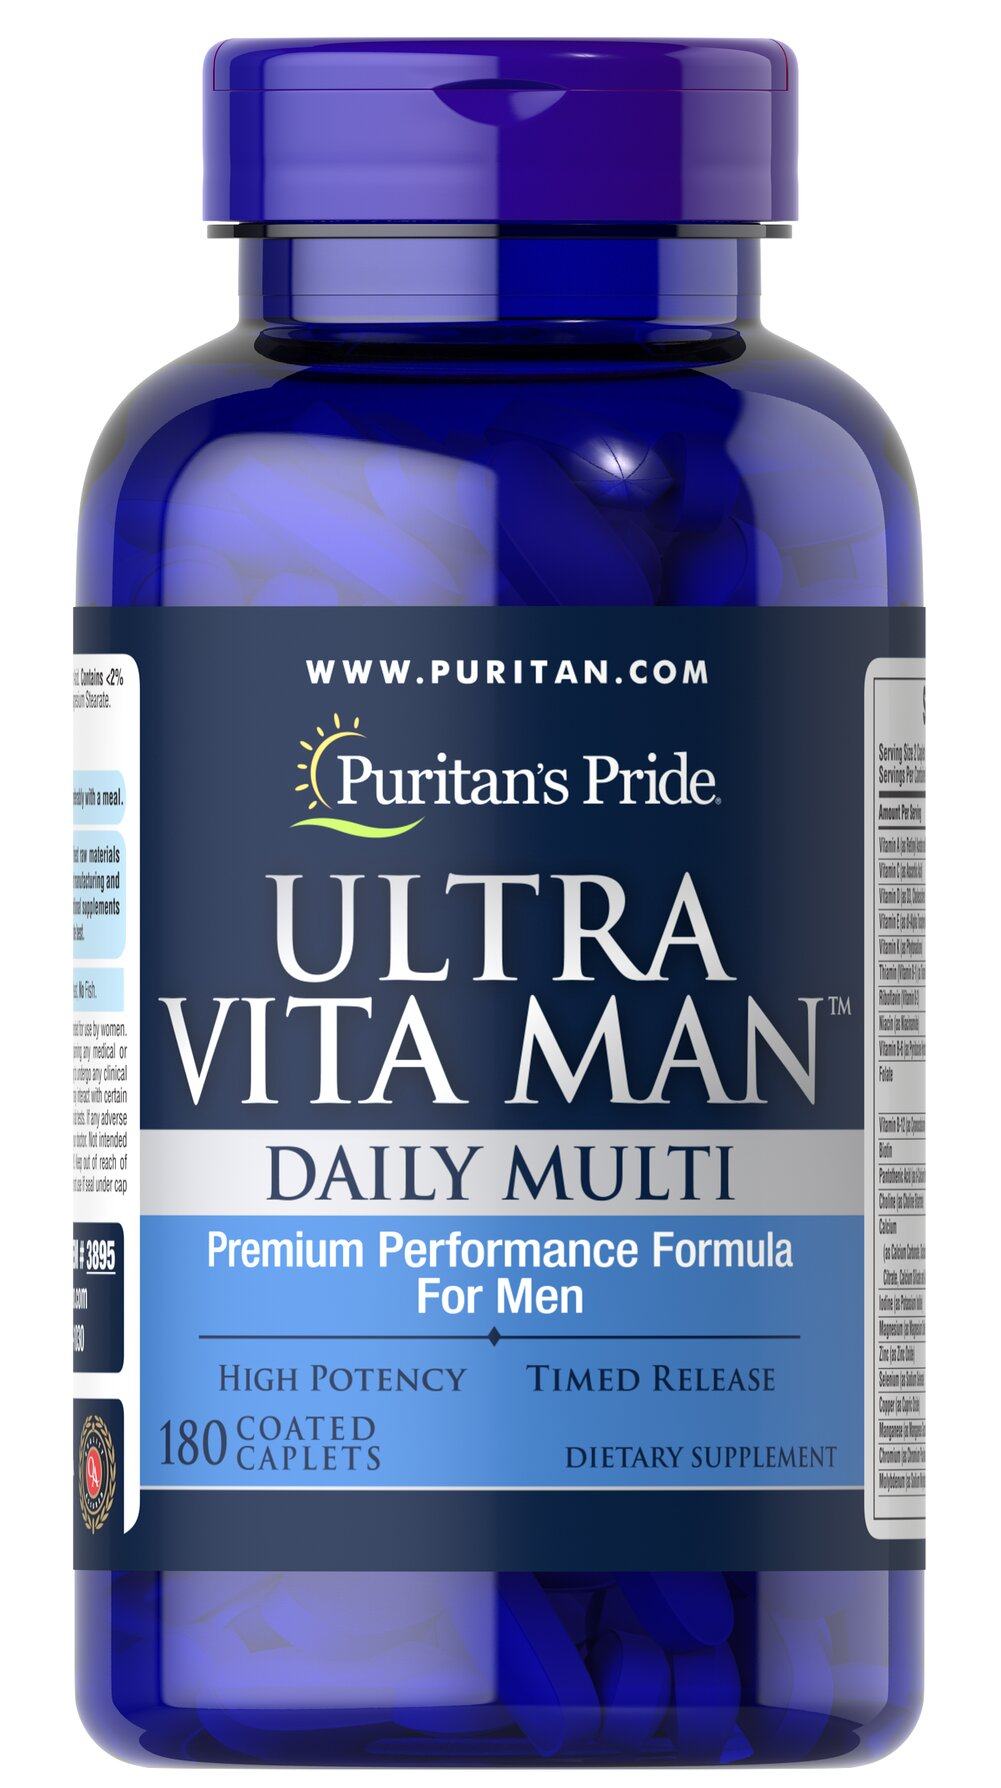 Ultra Vita Man™ Time Release <p>This time release multivitamins  delivers vitamins and minerals shown to be beneficial to men's overall wellness. From antioxidant and immune support to cardiovascular health, Ultra Vita Man is ideal for today's on-the-go men!**</p> <p>Diabetics/Hypoglycemics: Use only under a doctor's supervision because this product contains chromium which may enhance insulin sensitivity and may affect your blood glucose levels.</p> 180 Time R